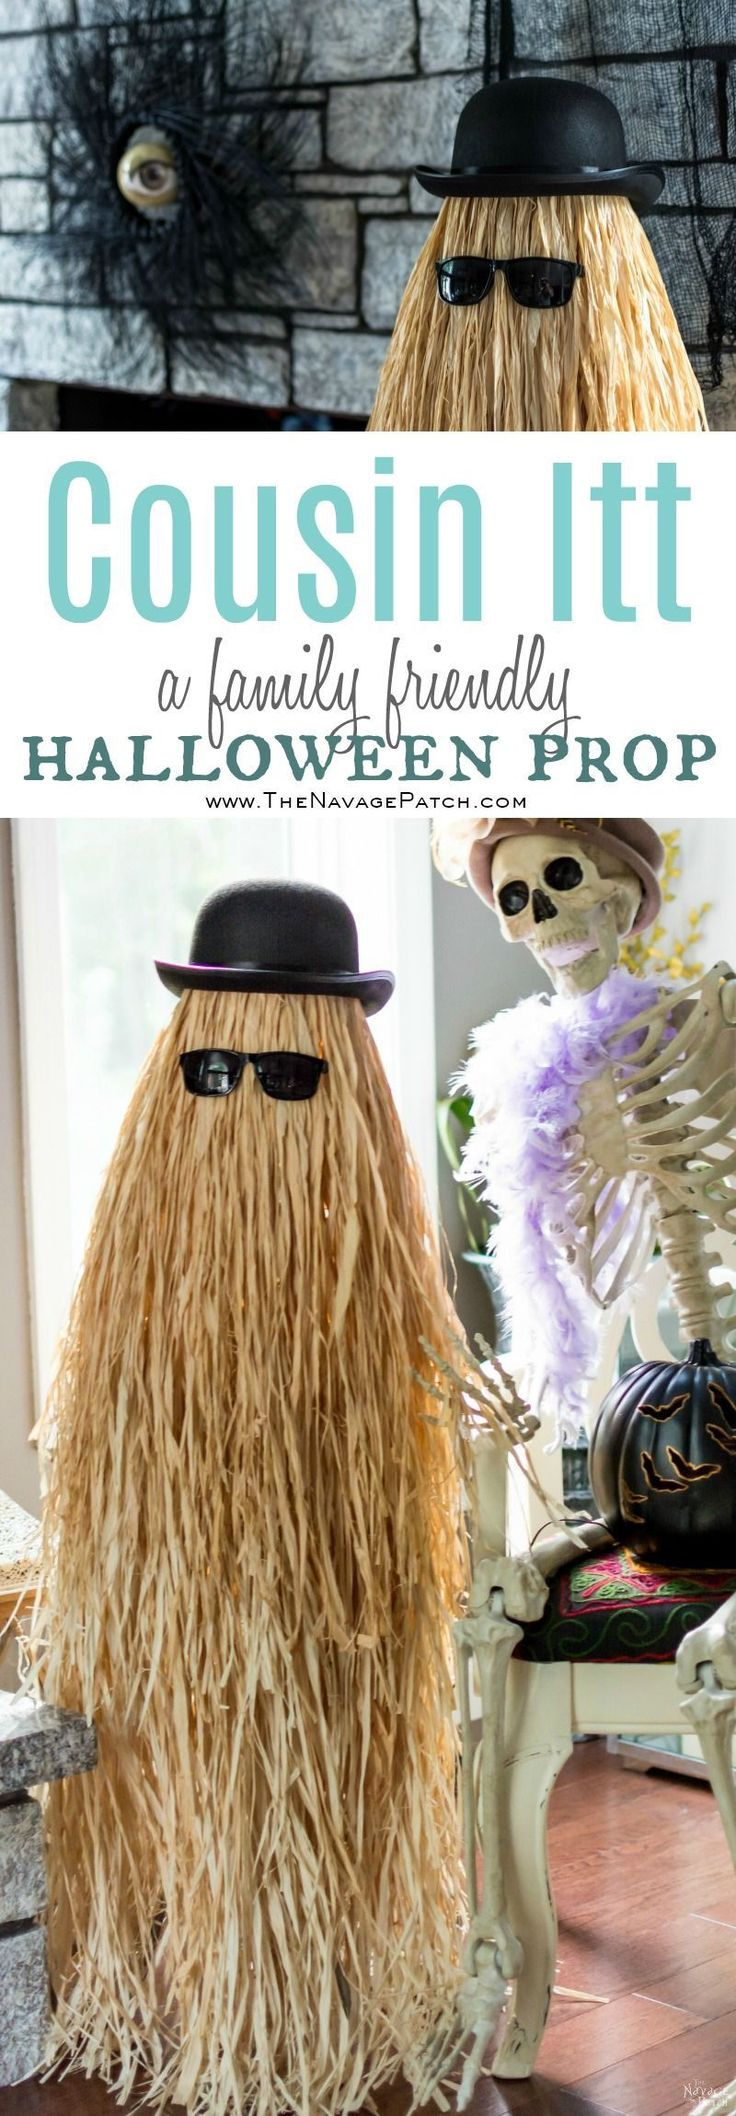 10 Super Easy & Cheap DIY Halloween Decorations you will LOVE